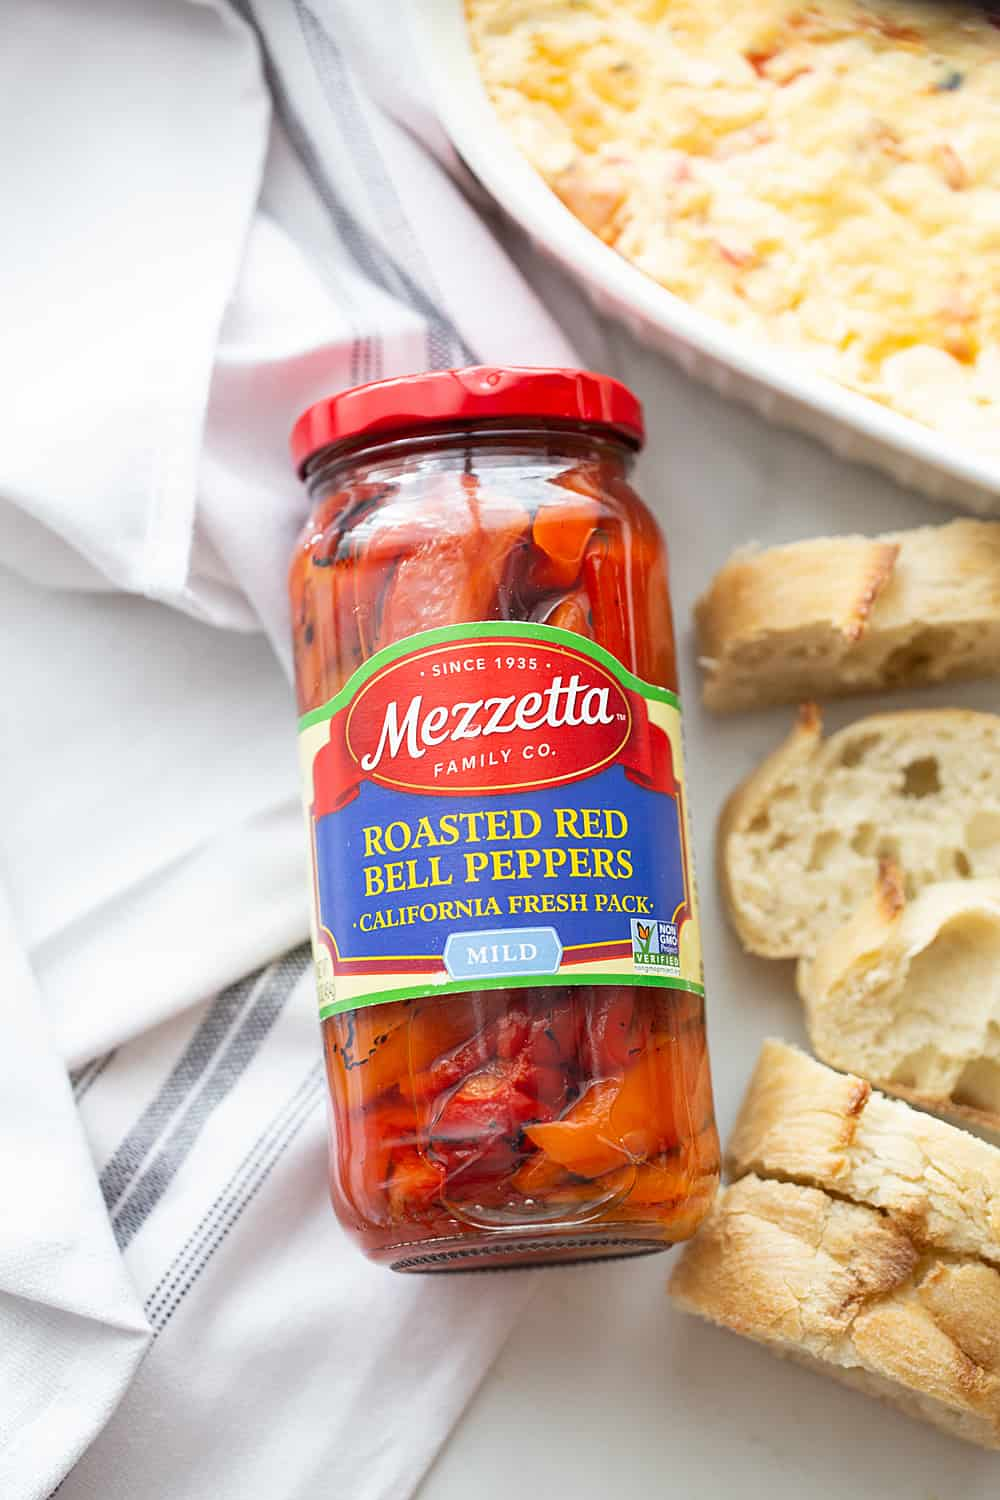 Hot Roasted Red Pepper Dip - Planning a summer staycation? #ad Make sure to add some hot roasted red pepper dip to the schedule. In fact, it's so good, you'll want to list it twice! The rich, smoky flavor of @Mezzetta roasted red peppers take this creamy, cheesy, flavorful dip to an entirely new level—a totally tasty, gotta-have-it level! #Mezzetta #halfscratched #hotdip #hotappetizer #appetizer #baking #cooking #vegetarian